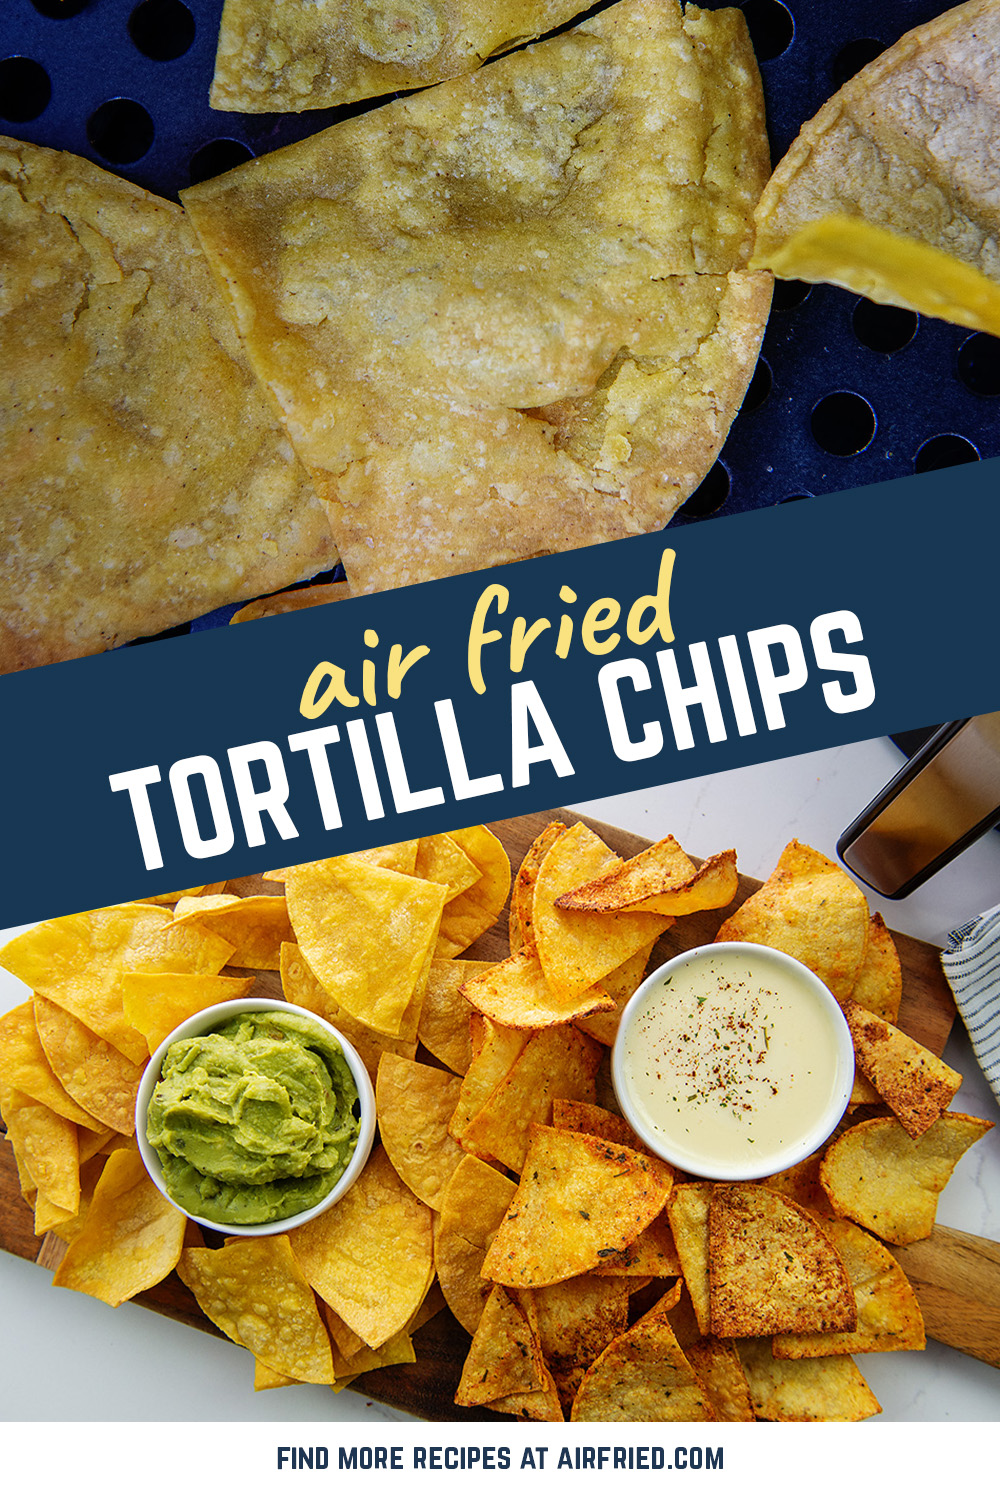 Crispy tortilla chips are a breeze to make in the air fryer! #coolranch #snackrecipes #airfried